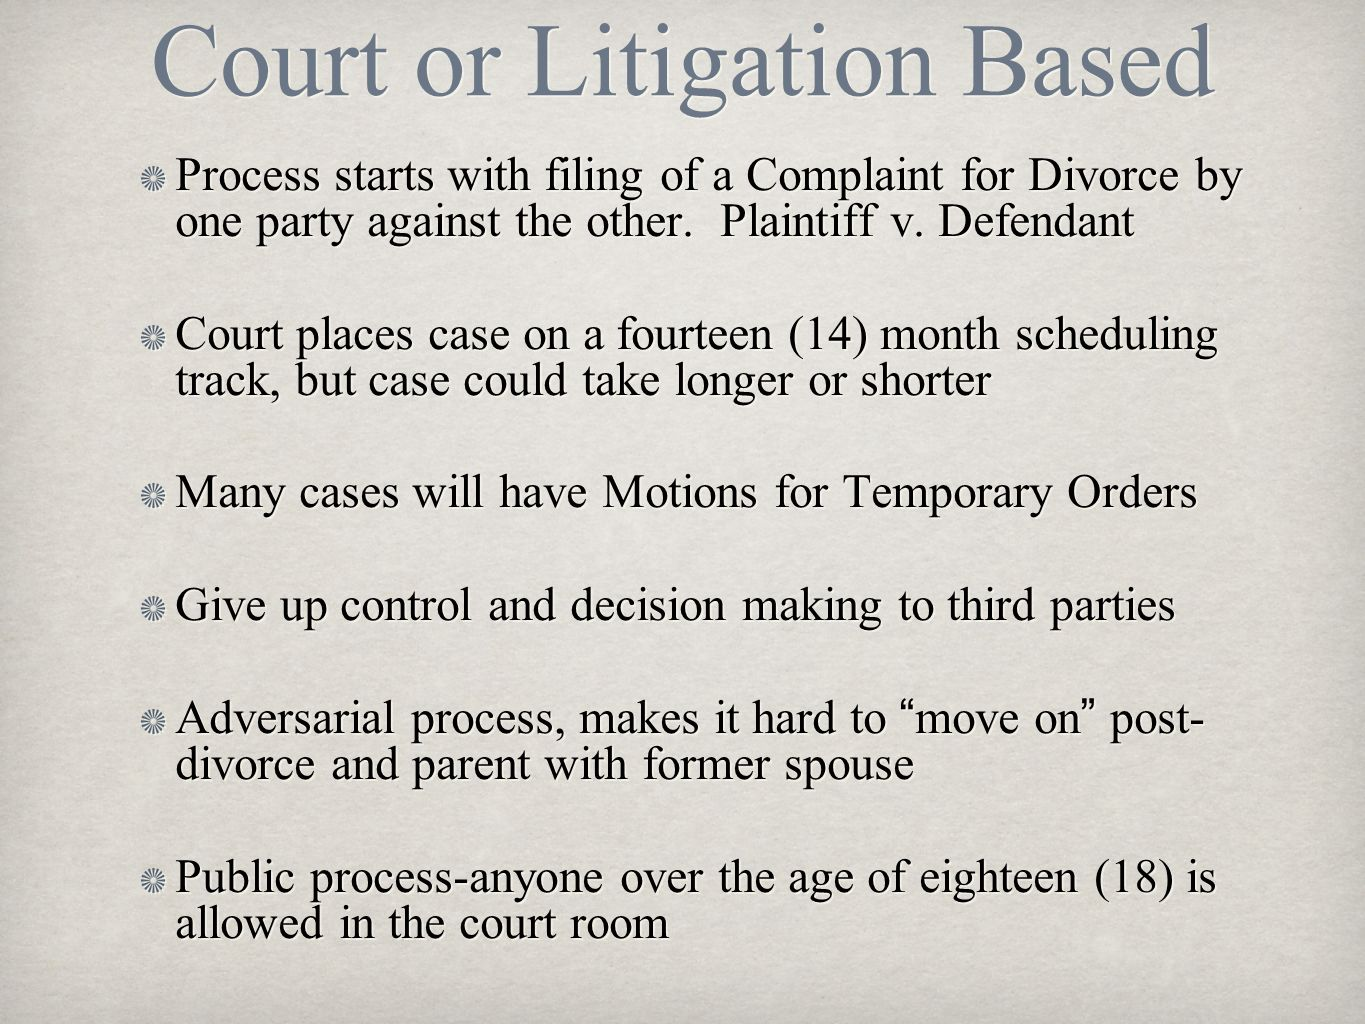 Court or Litigation Based